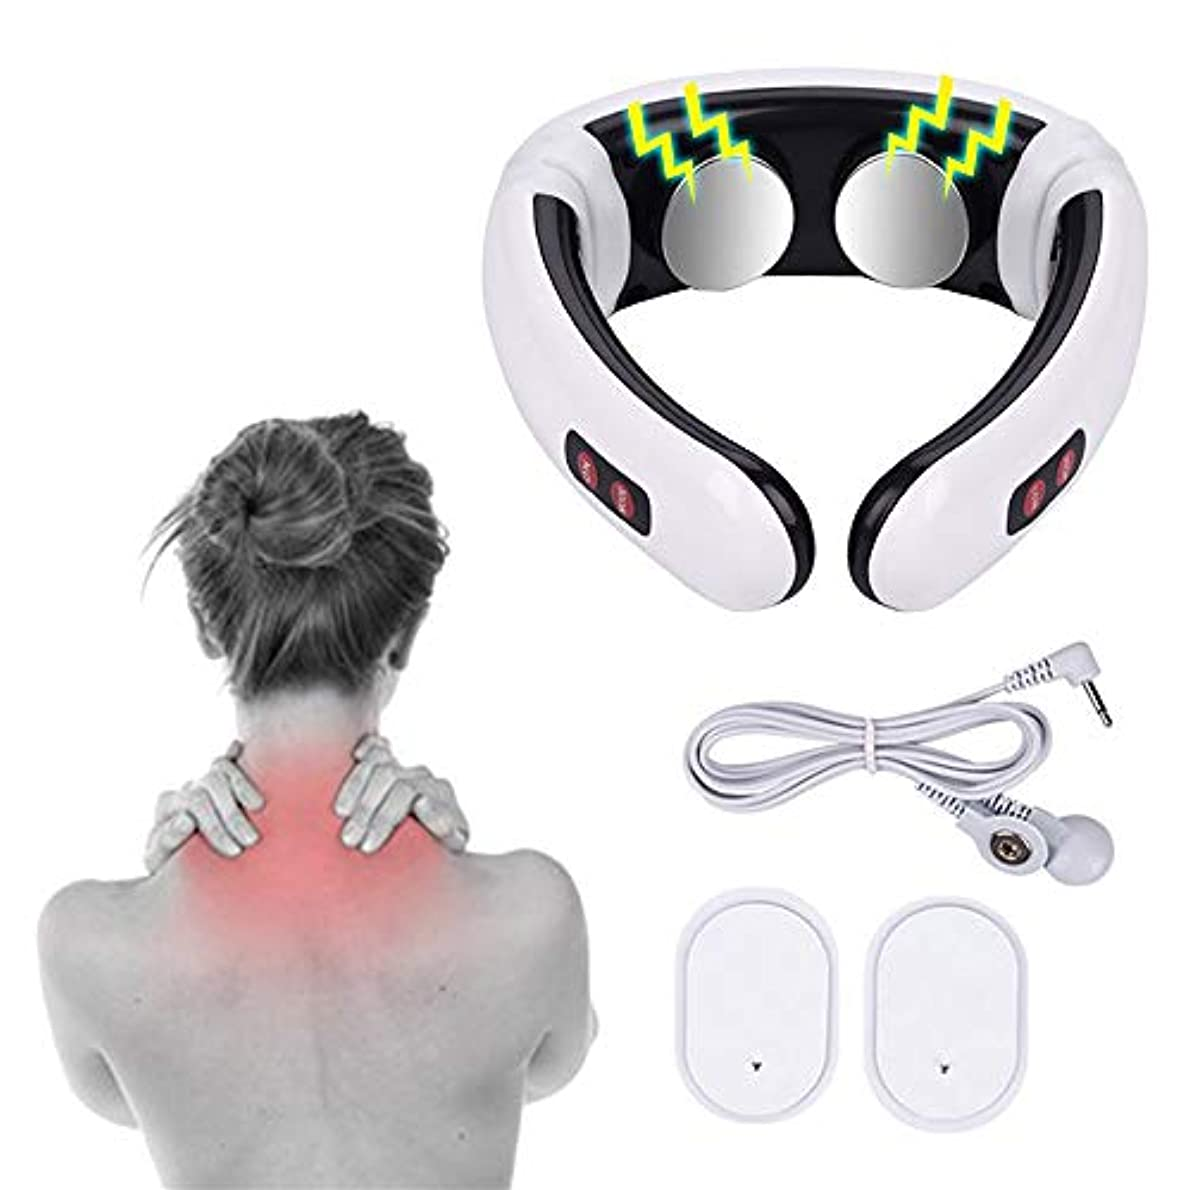 走るホーン壊滅的な1 PC Electric Pulse Back and Neck Massager Far Infrared Pain Relief Tool Health Care Relaxation Multifunctional...